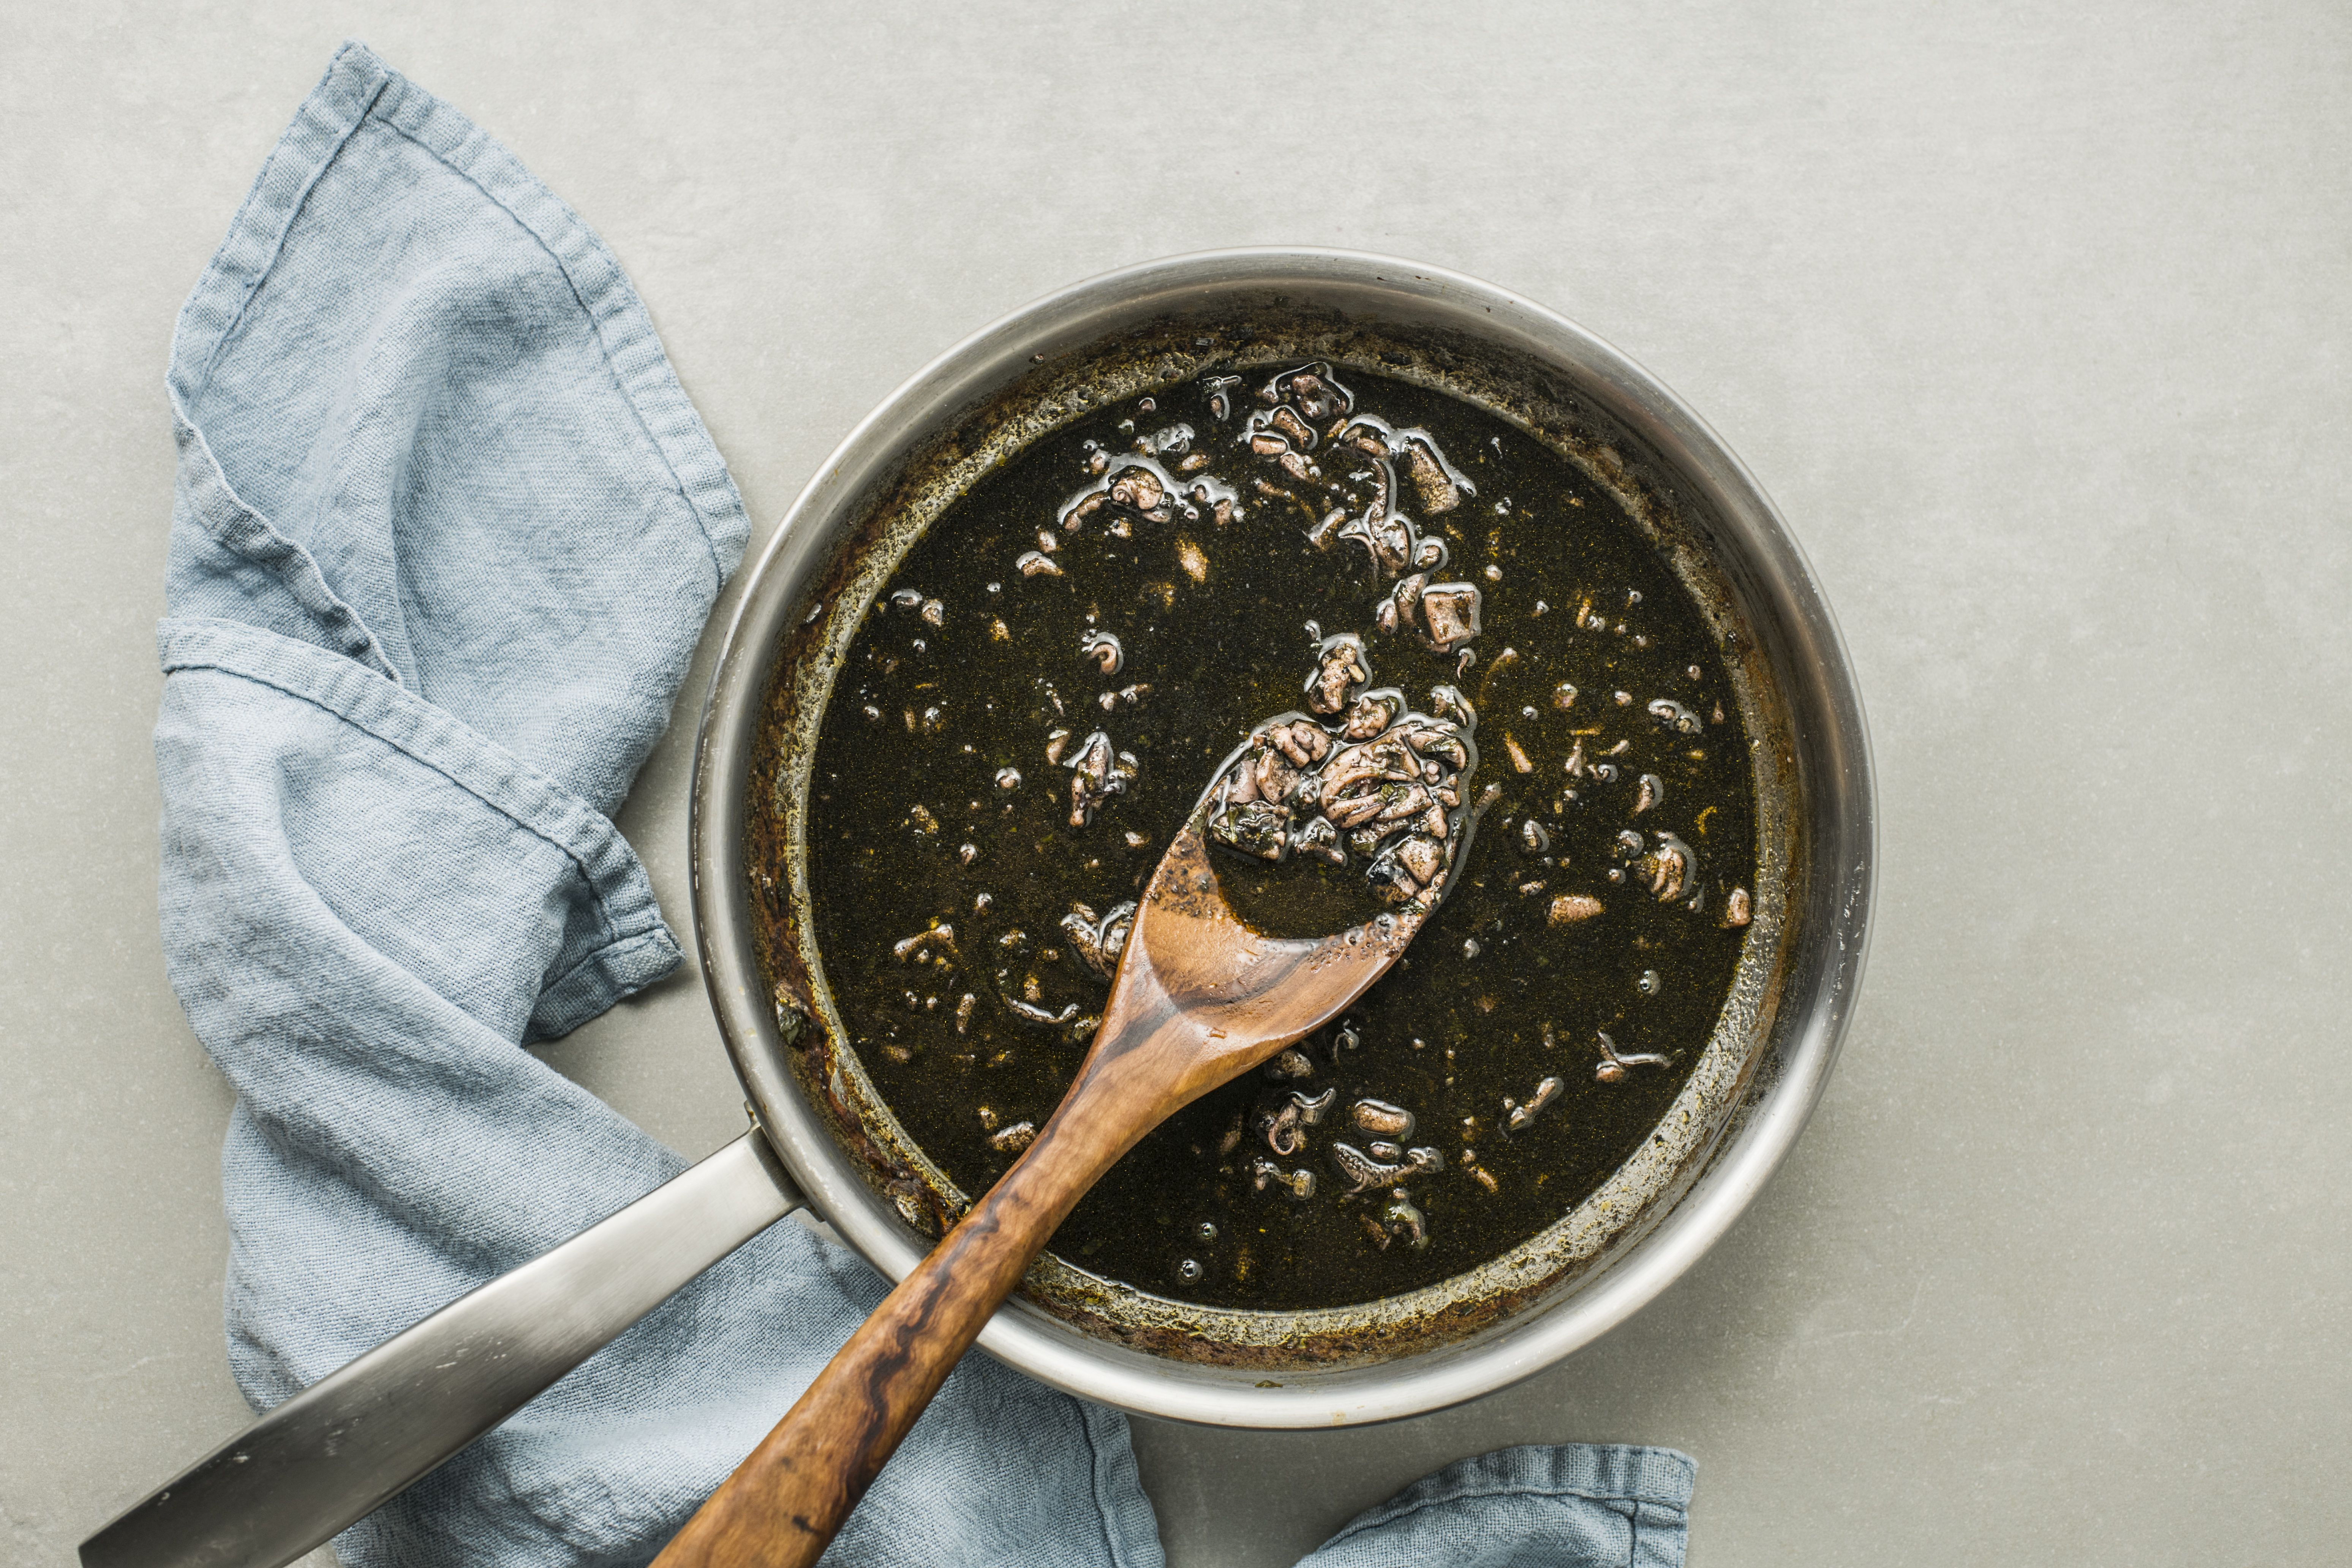 Squid ink added to sauce